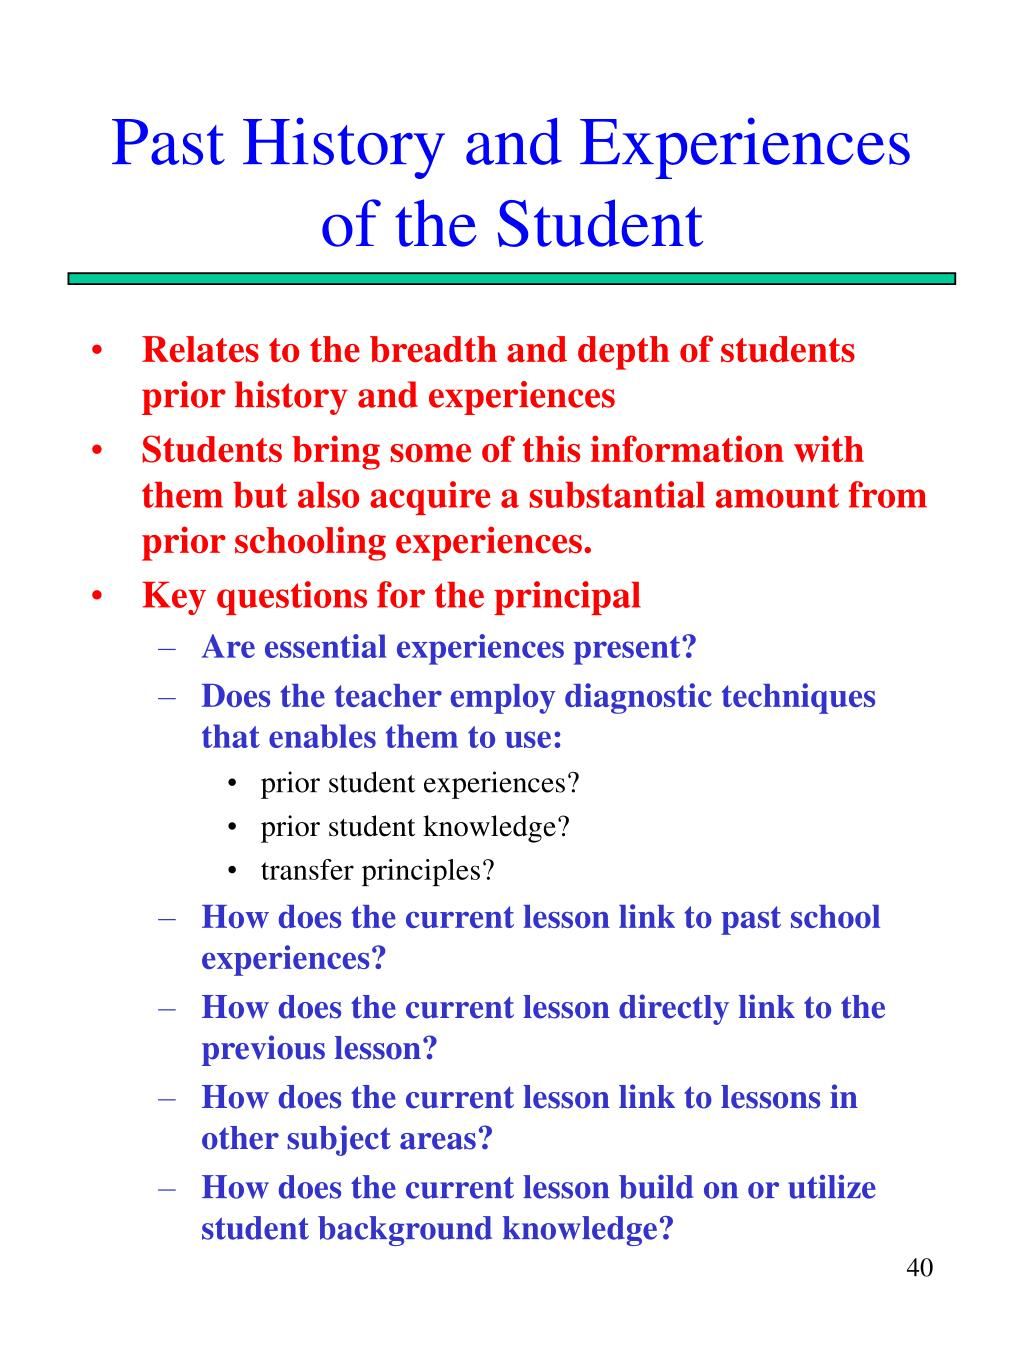 Past History and Experiences of the Student